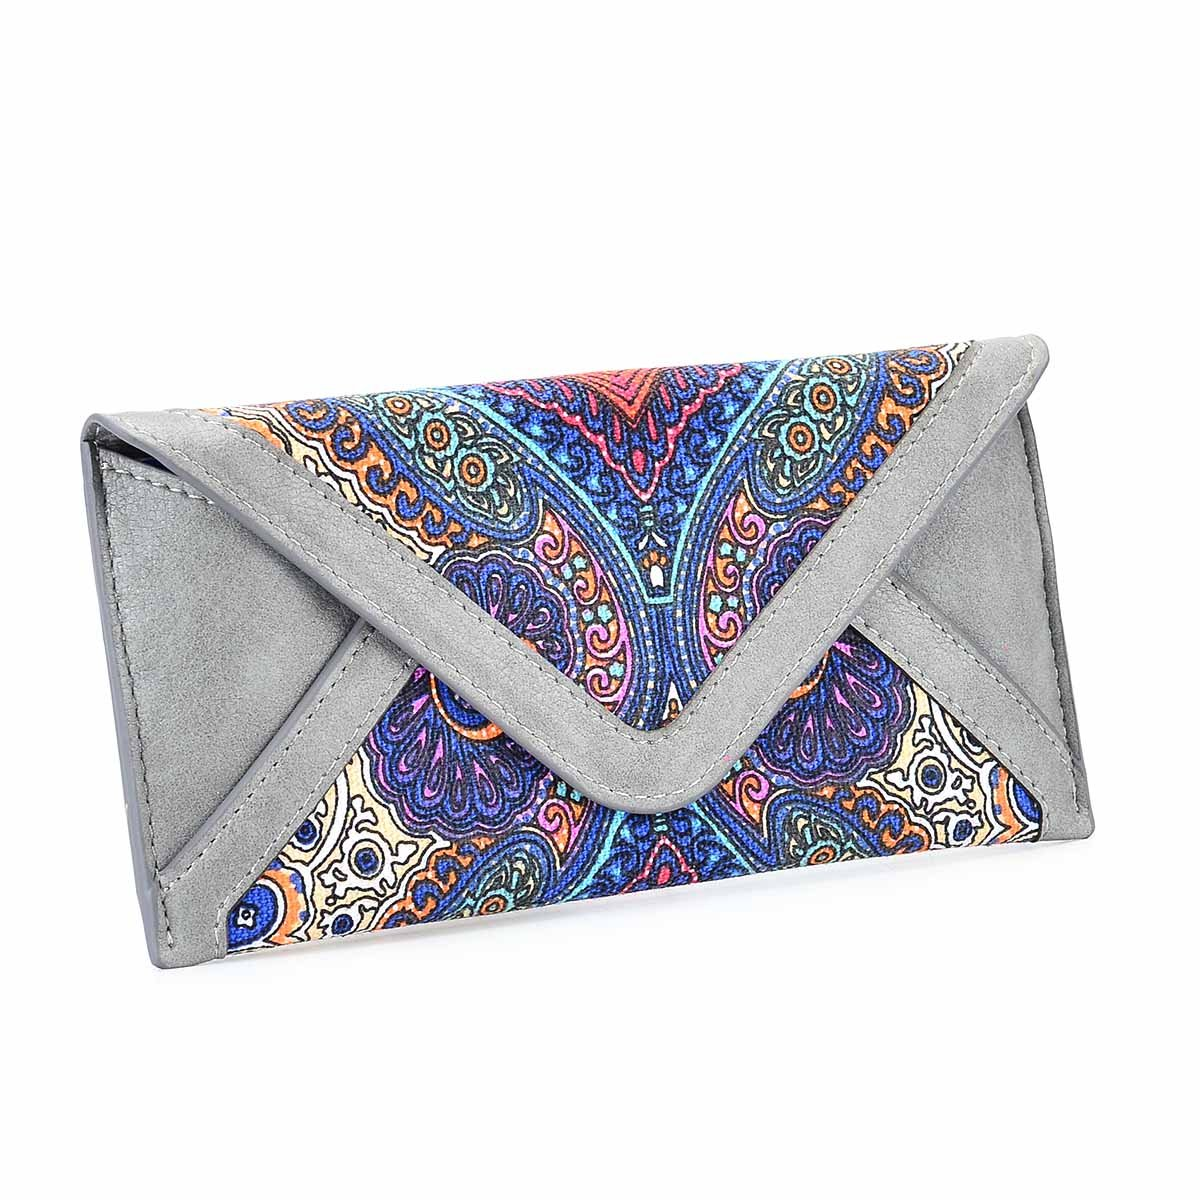 Women's Card Wallet Envelope Style Credit Card Holder Cute Cash Wallet for Ladies (Grey)